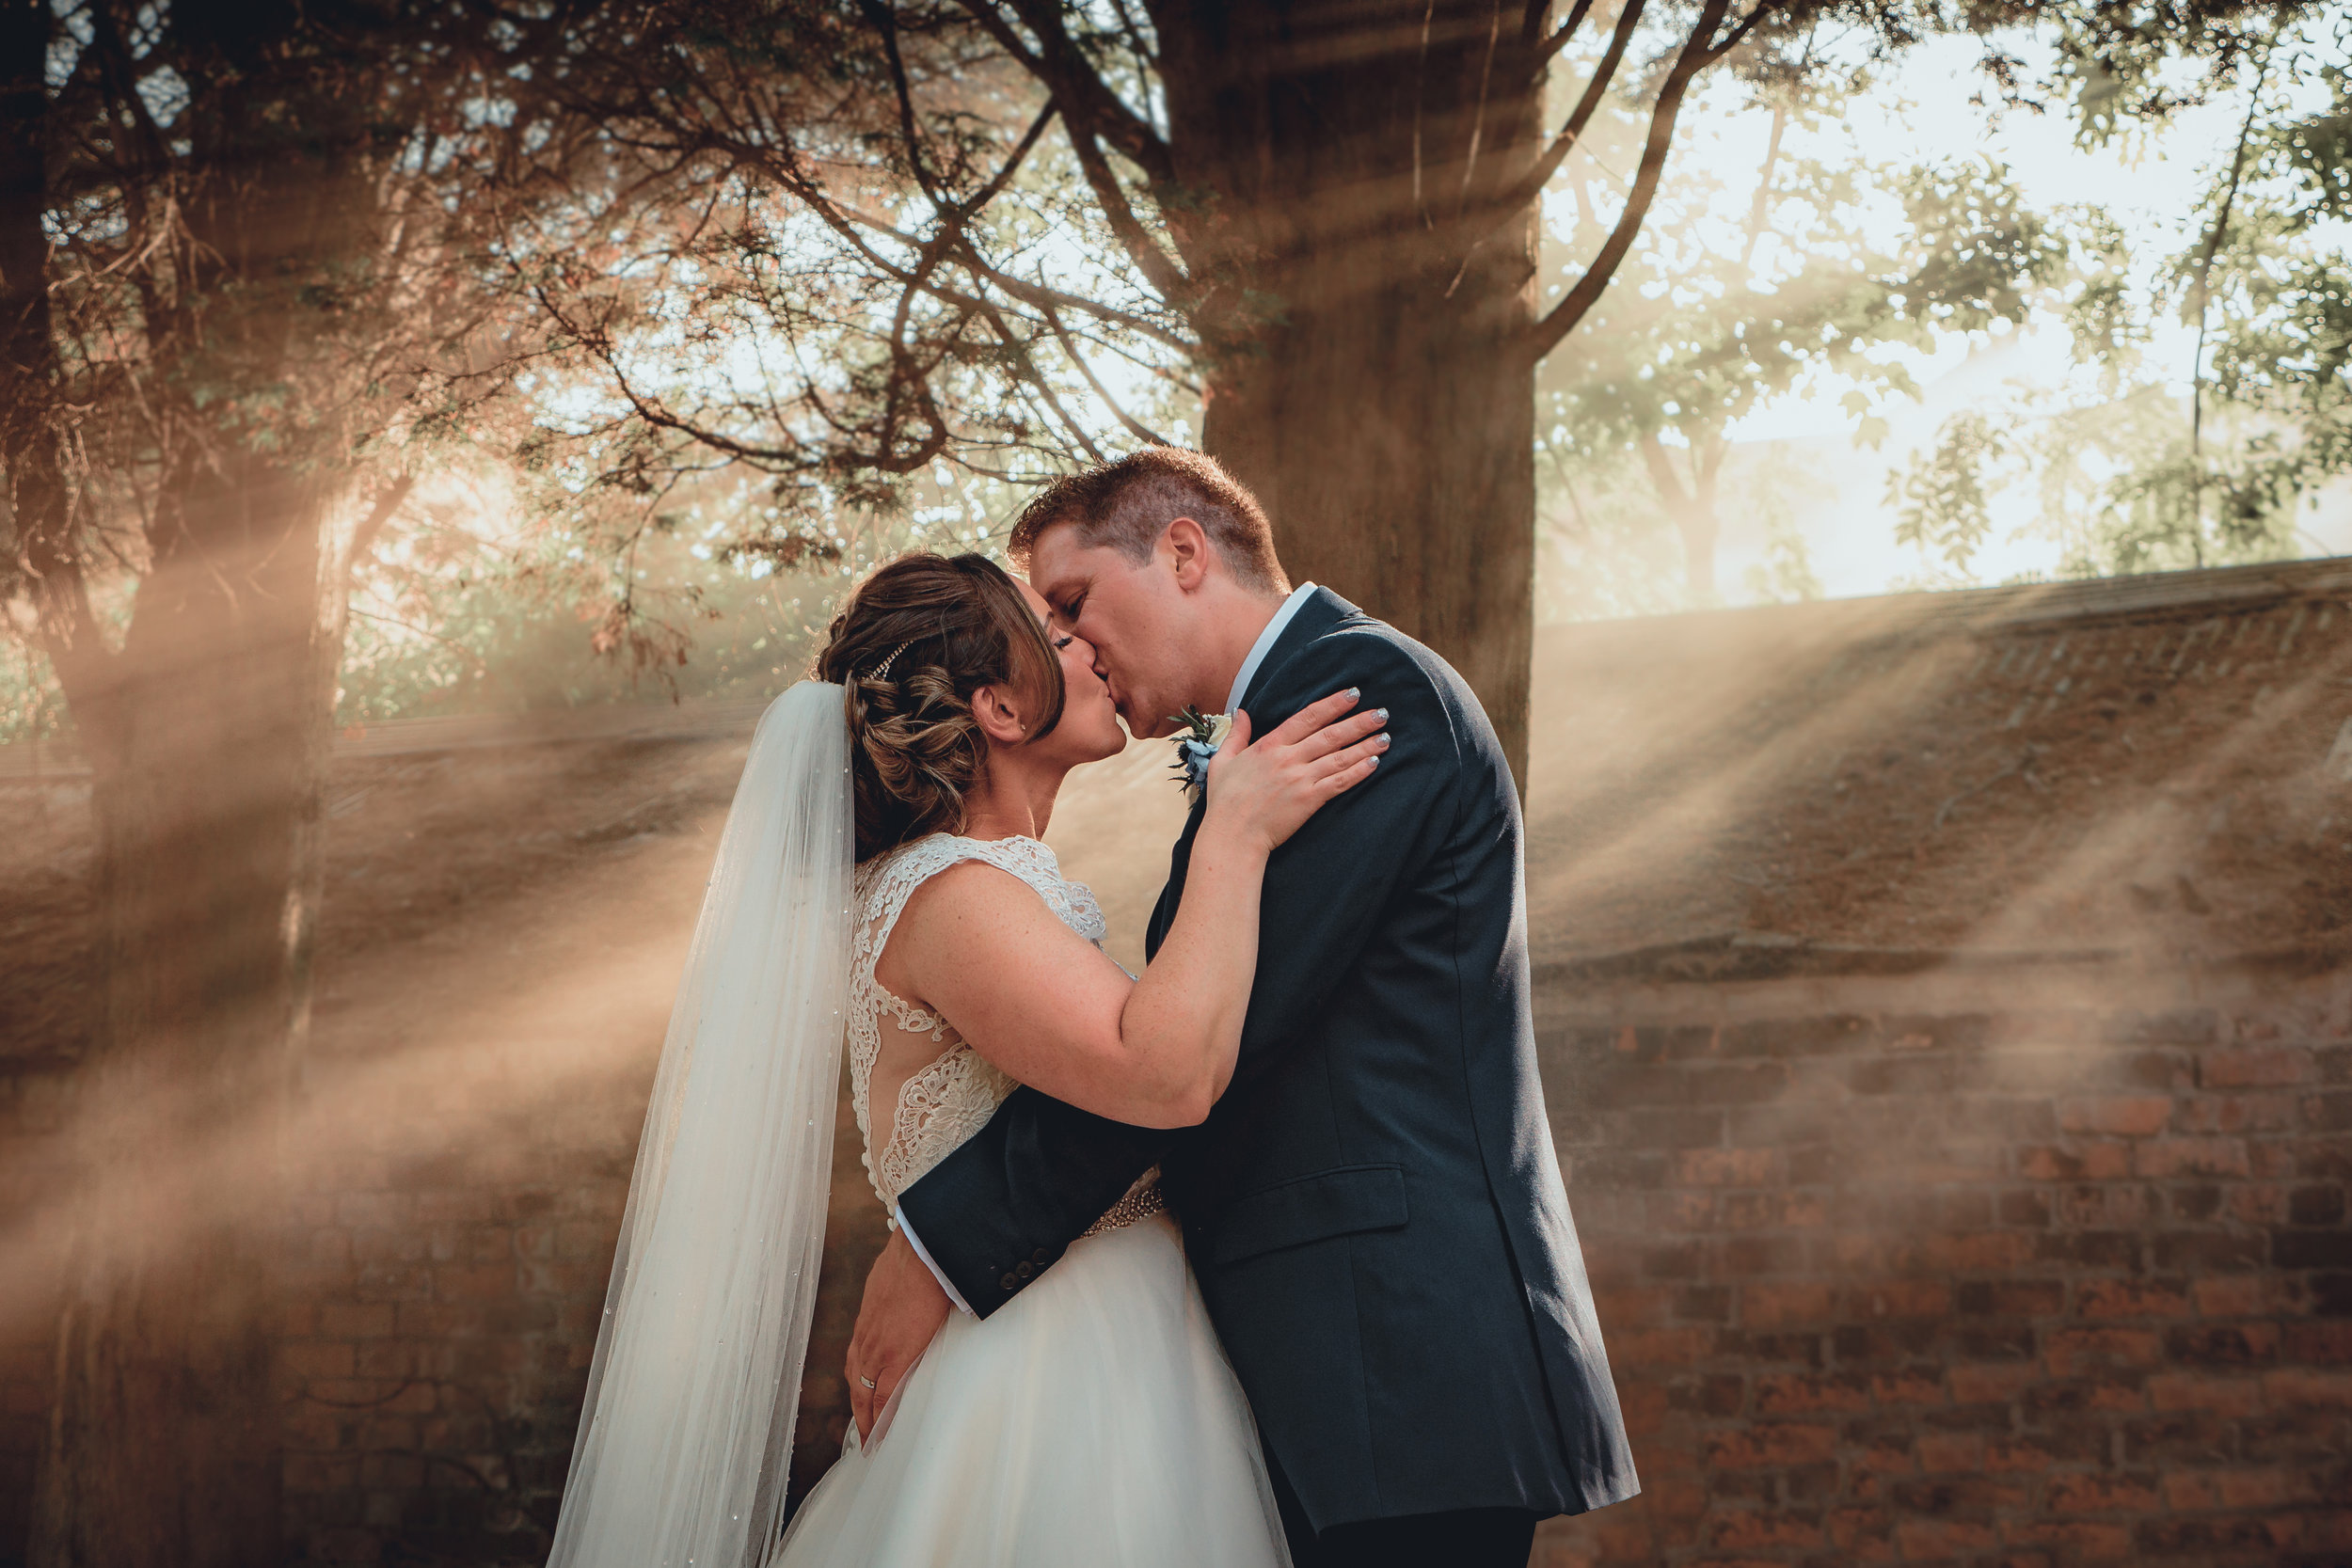 £1250 package - Full day coverage from morning to first dance, or until 9pm, which ever comes first.Secure your date for just £100 and pay in instalments.